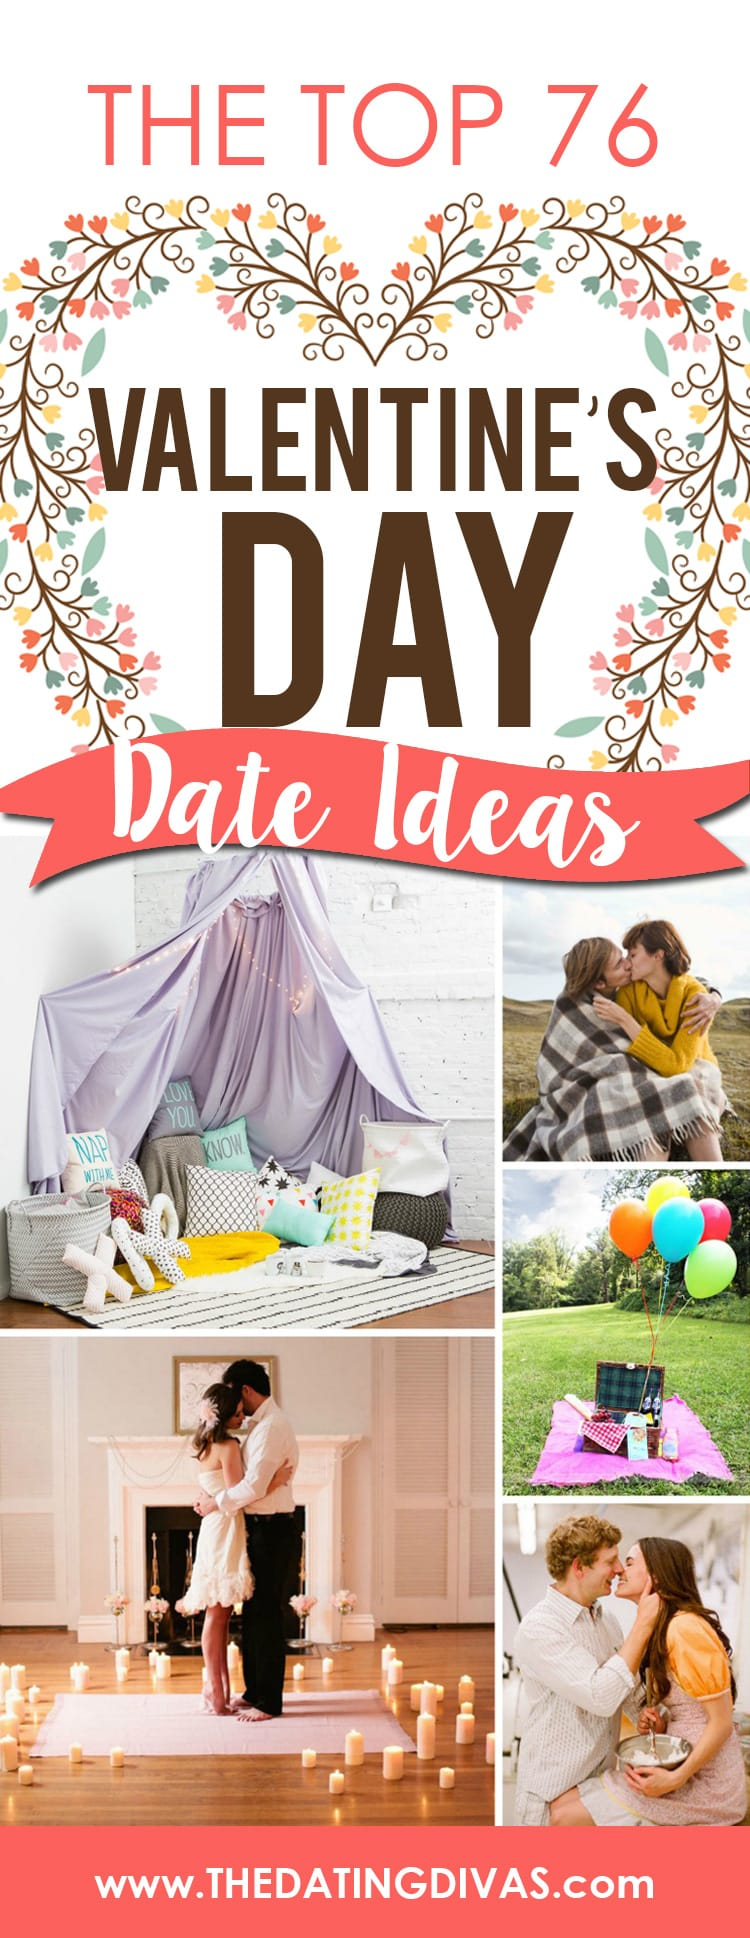 10 Ideal Great Valentines Day Date Ideas the top valentines day date ideas from the dating divas 2021